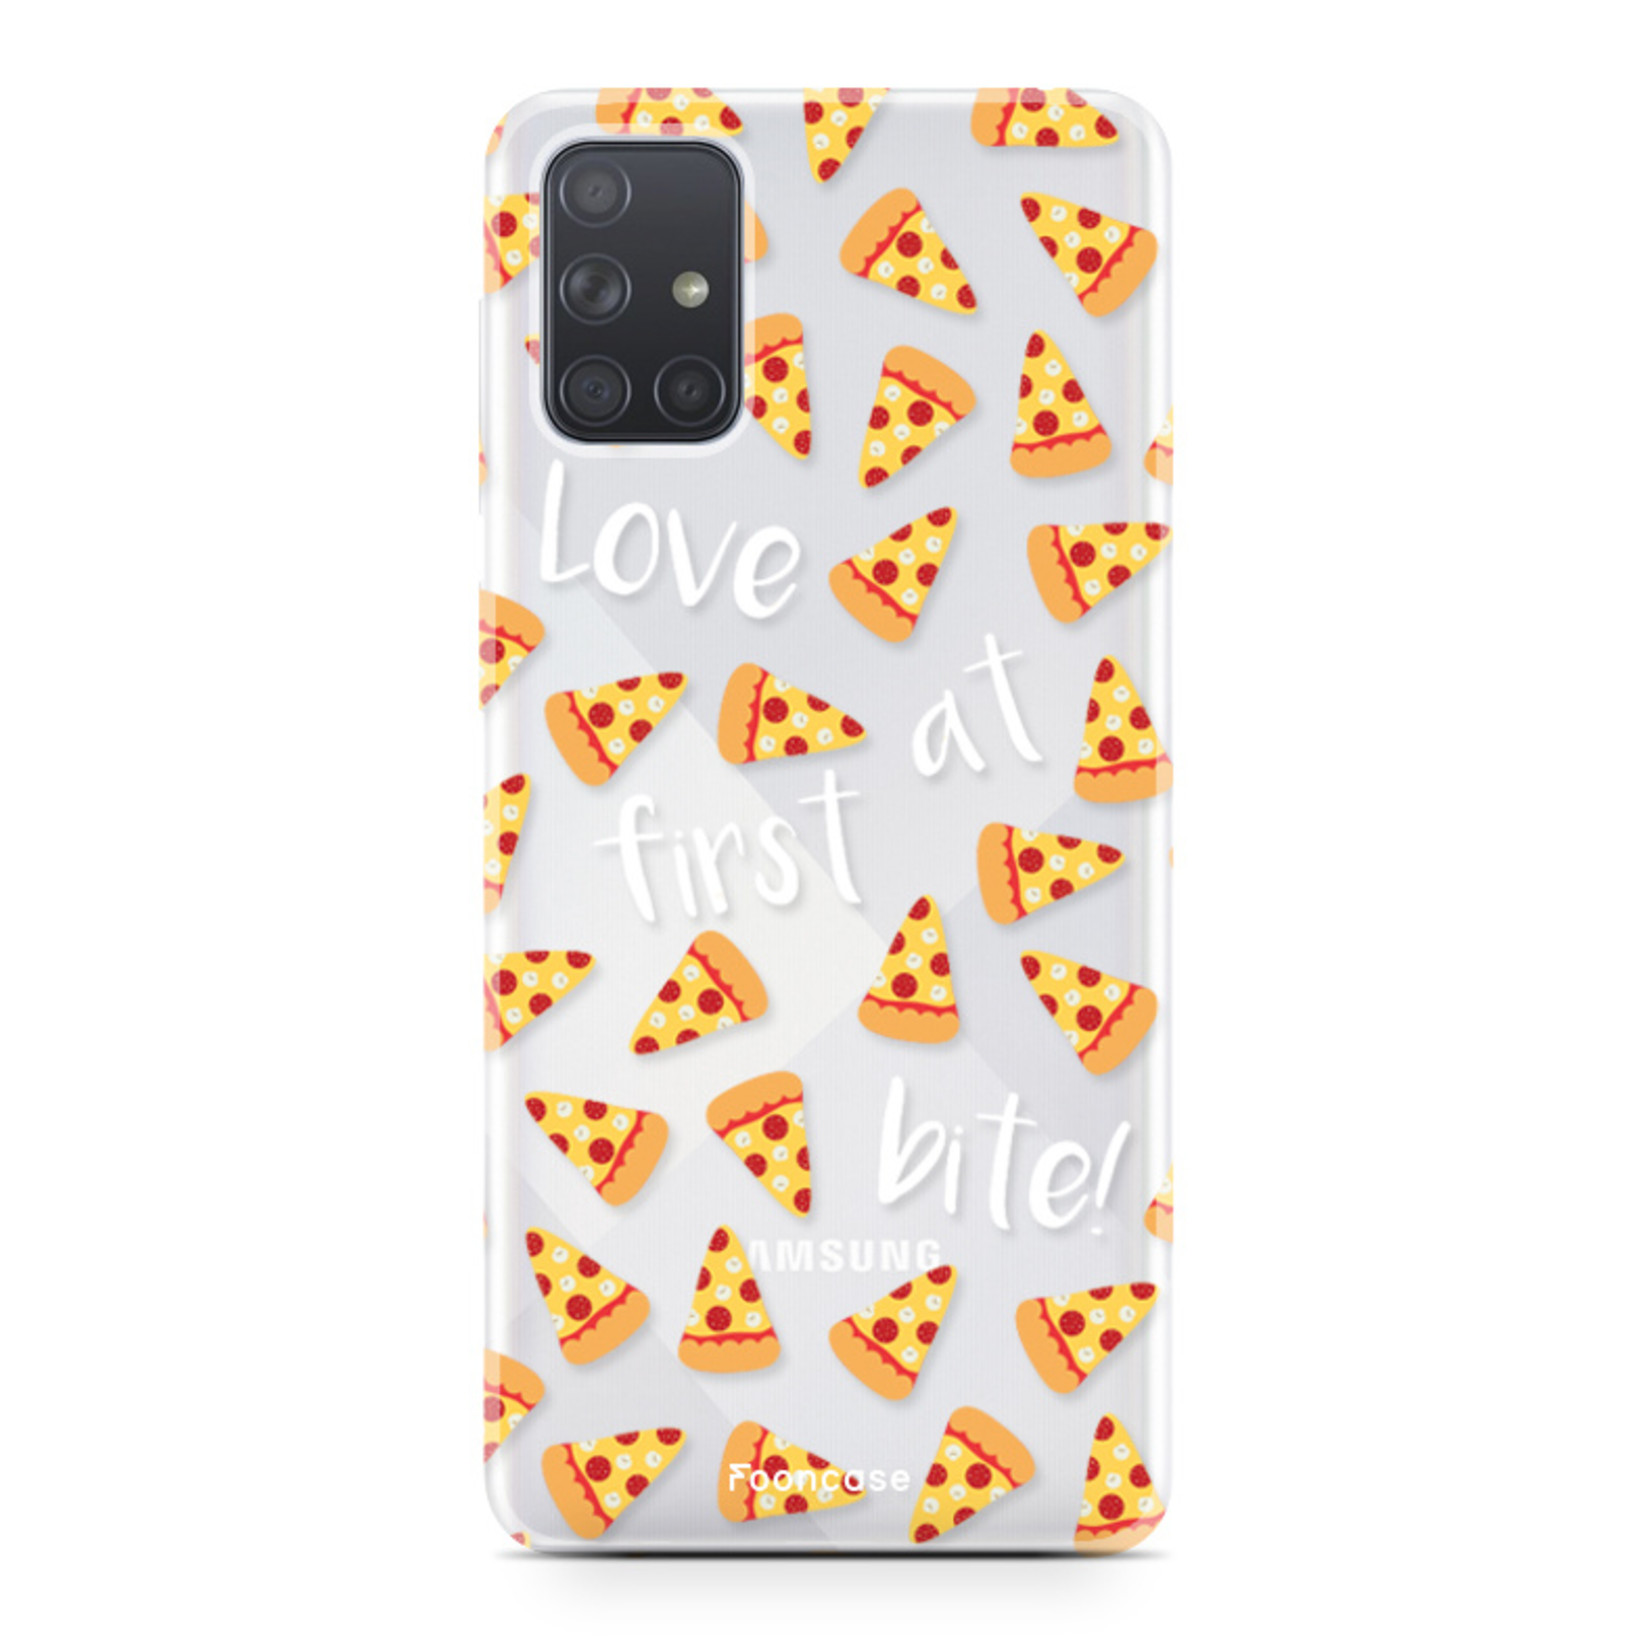 Samsung Galaxy A51 hoesje TPU Soft Case - Back Cover - Pizza / Food